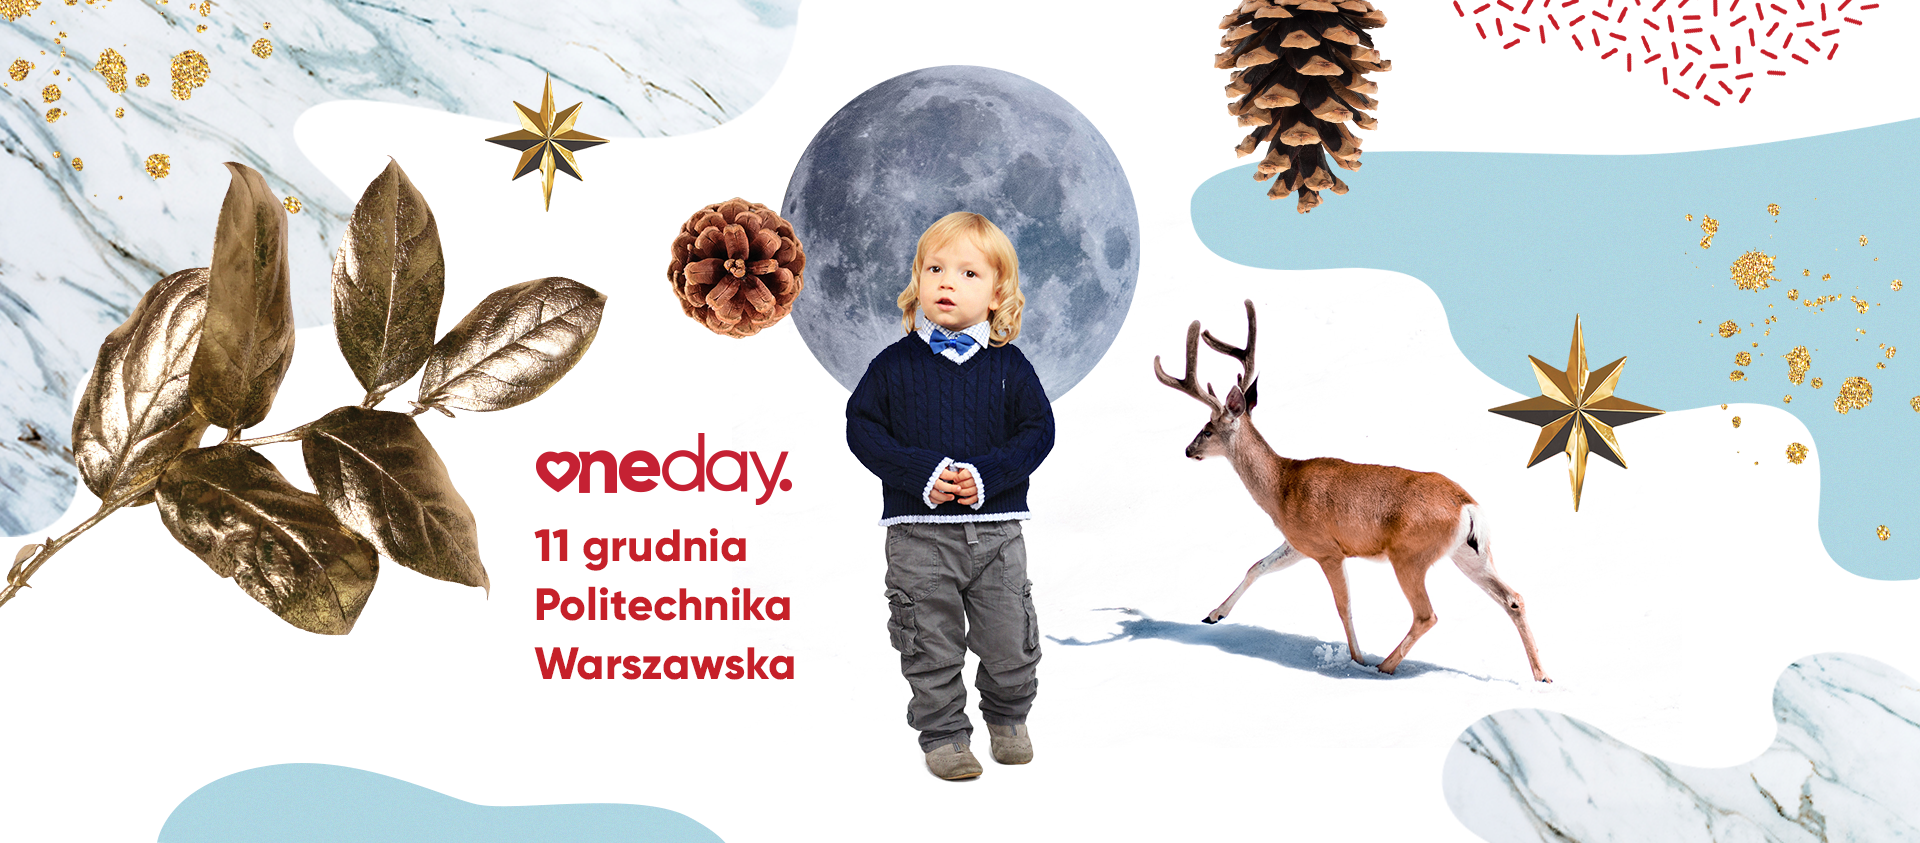 Tabelka Marzeń Fundacja One Day